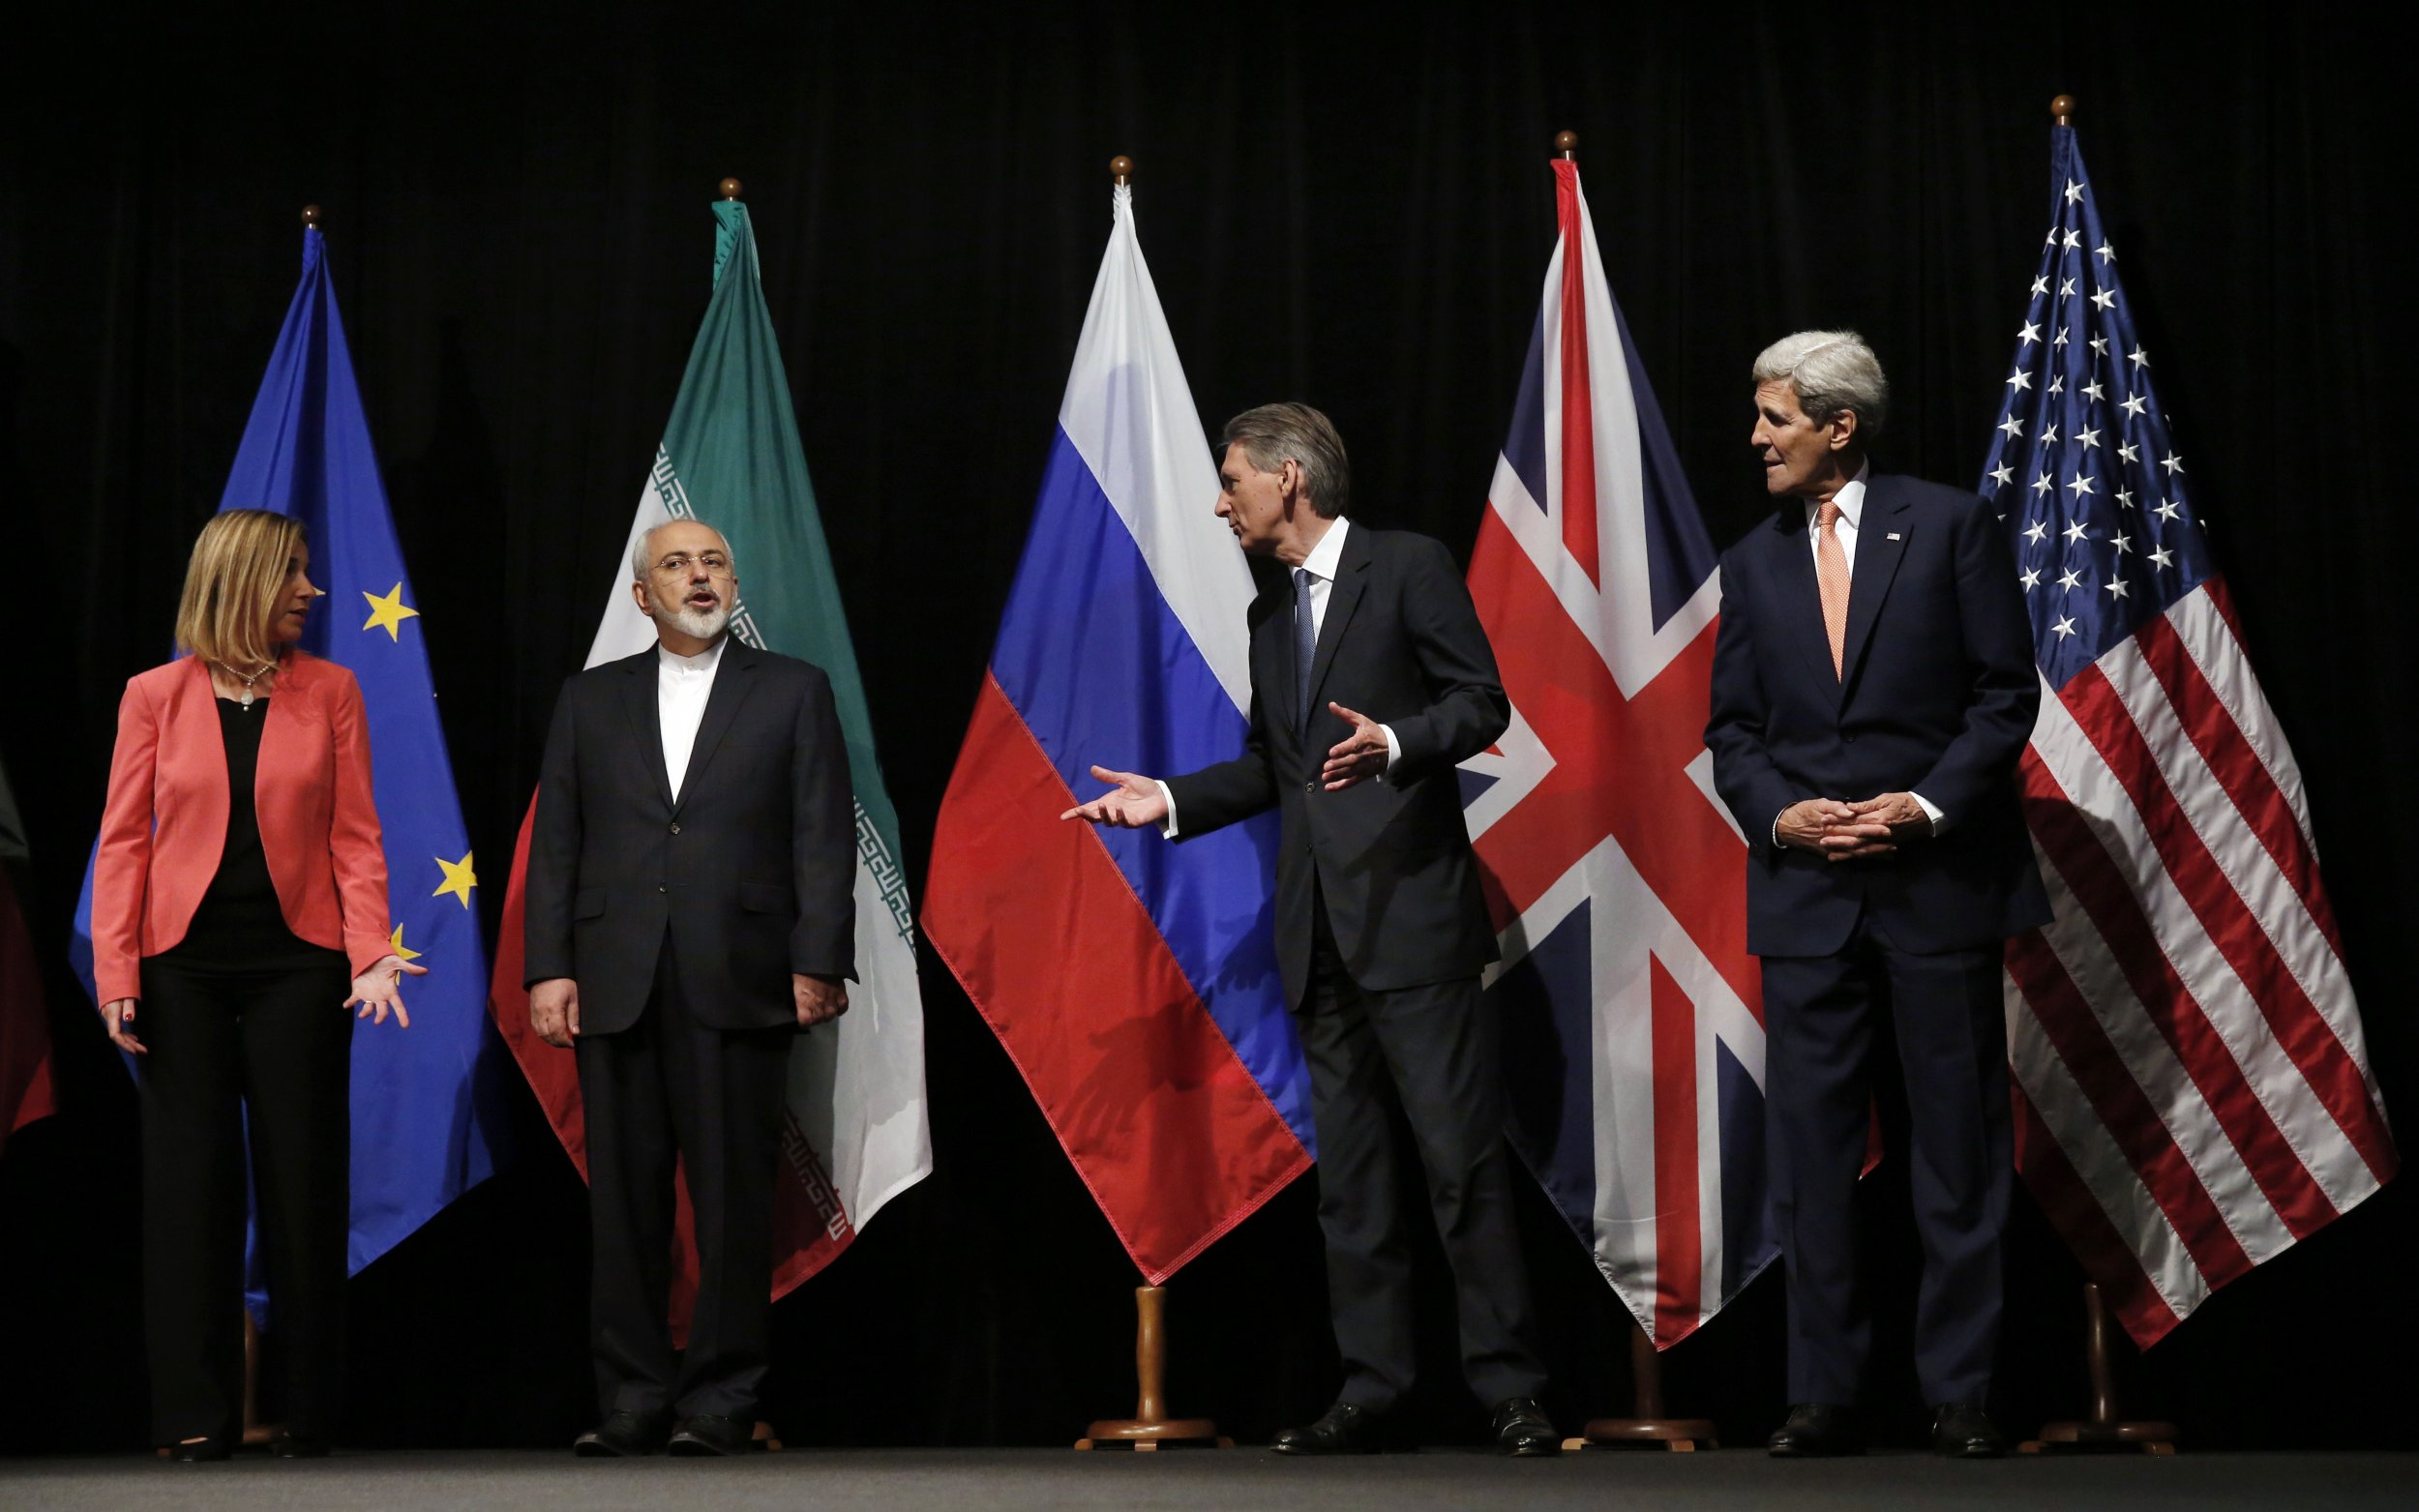 Iran nuclear deal agreement